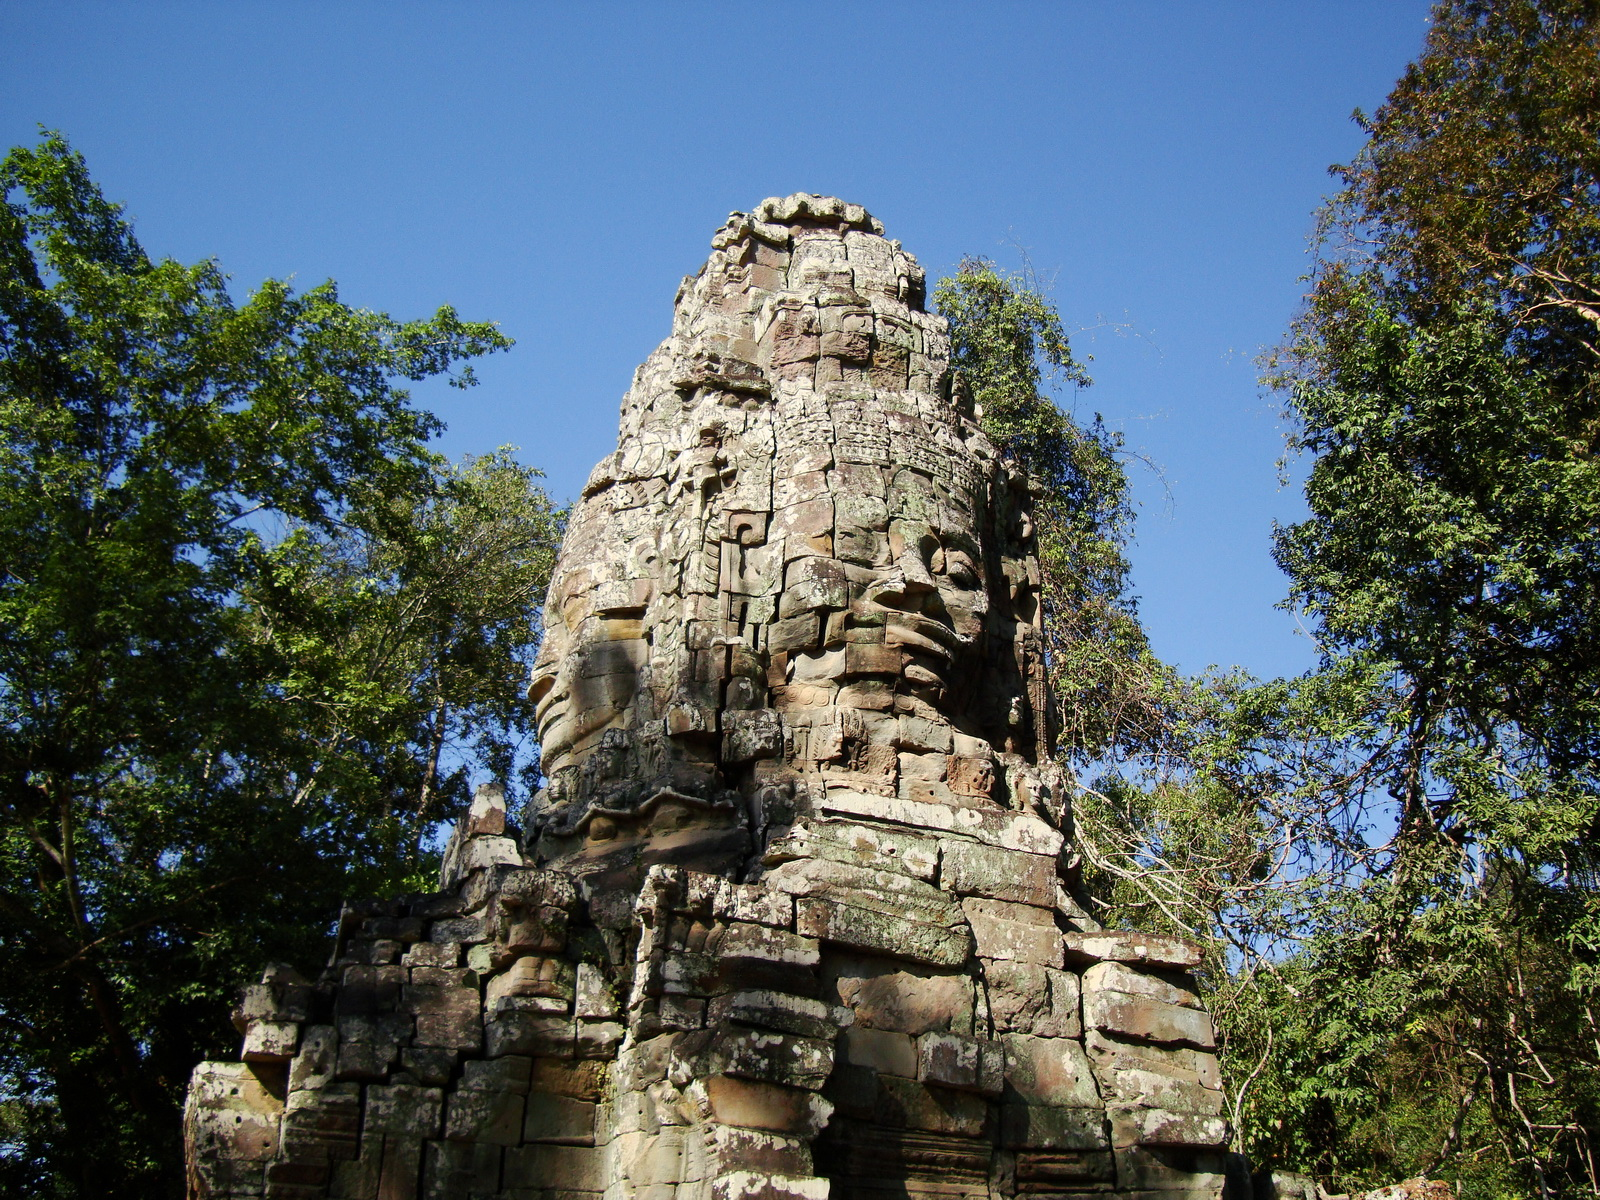 Ta Prohm Temple Tomb Raider Bayon architecture face tower 04